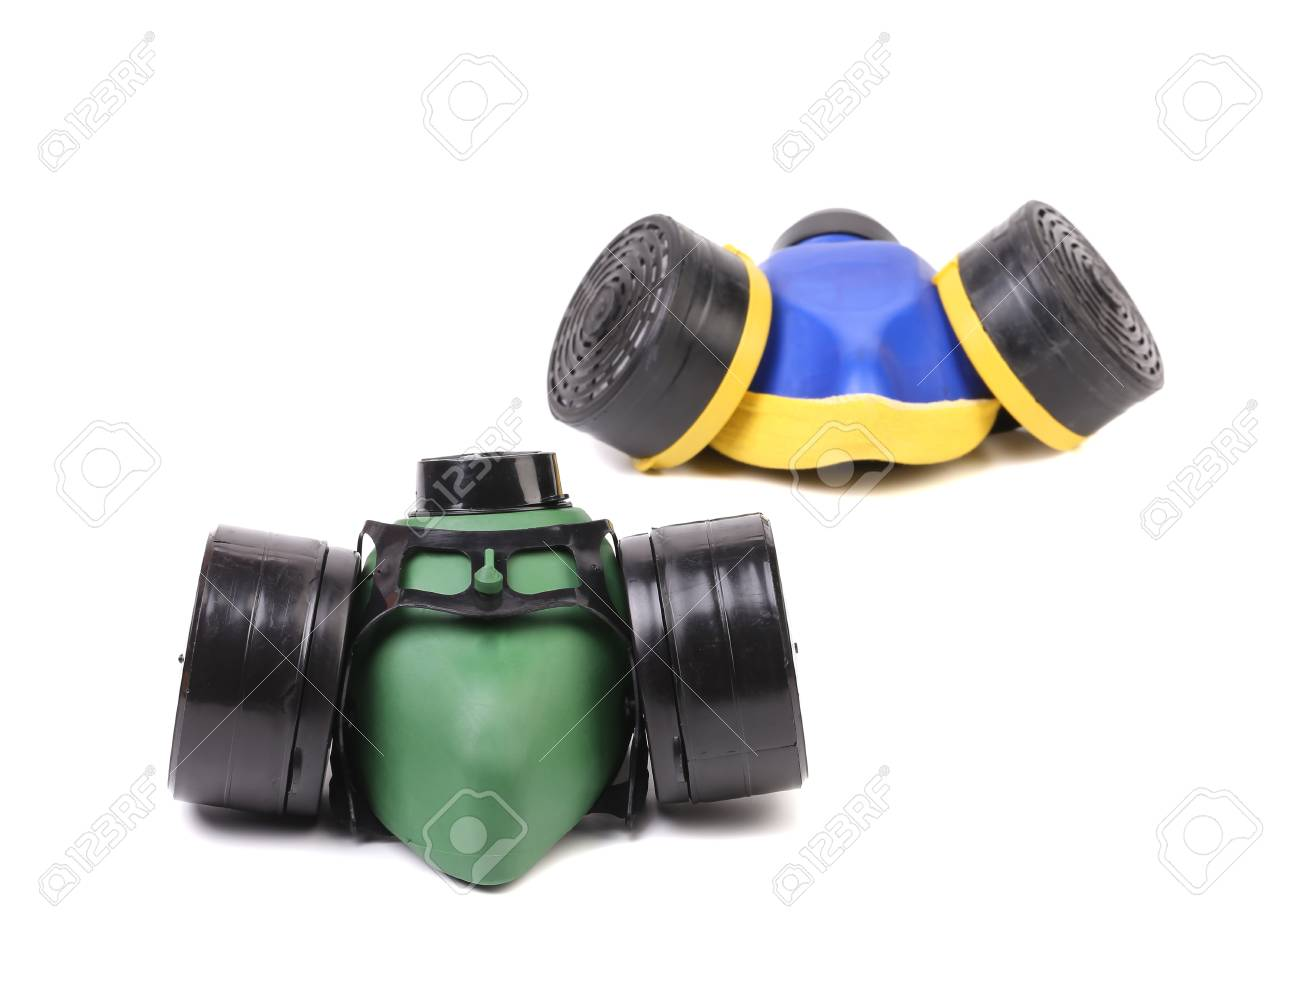 Two Gas Masks. Isolated on white background. Stock Photo - 22494606